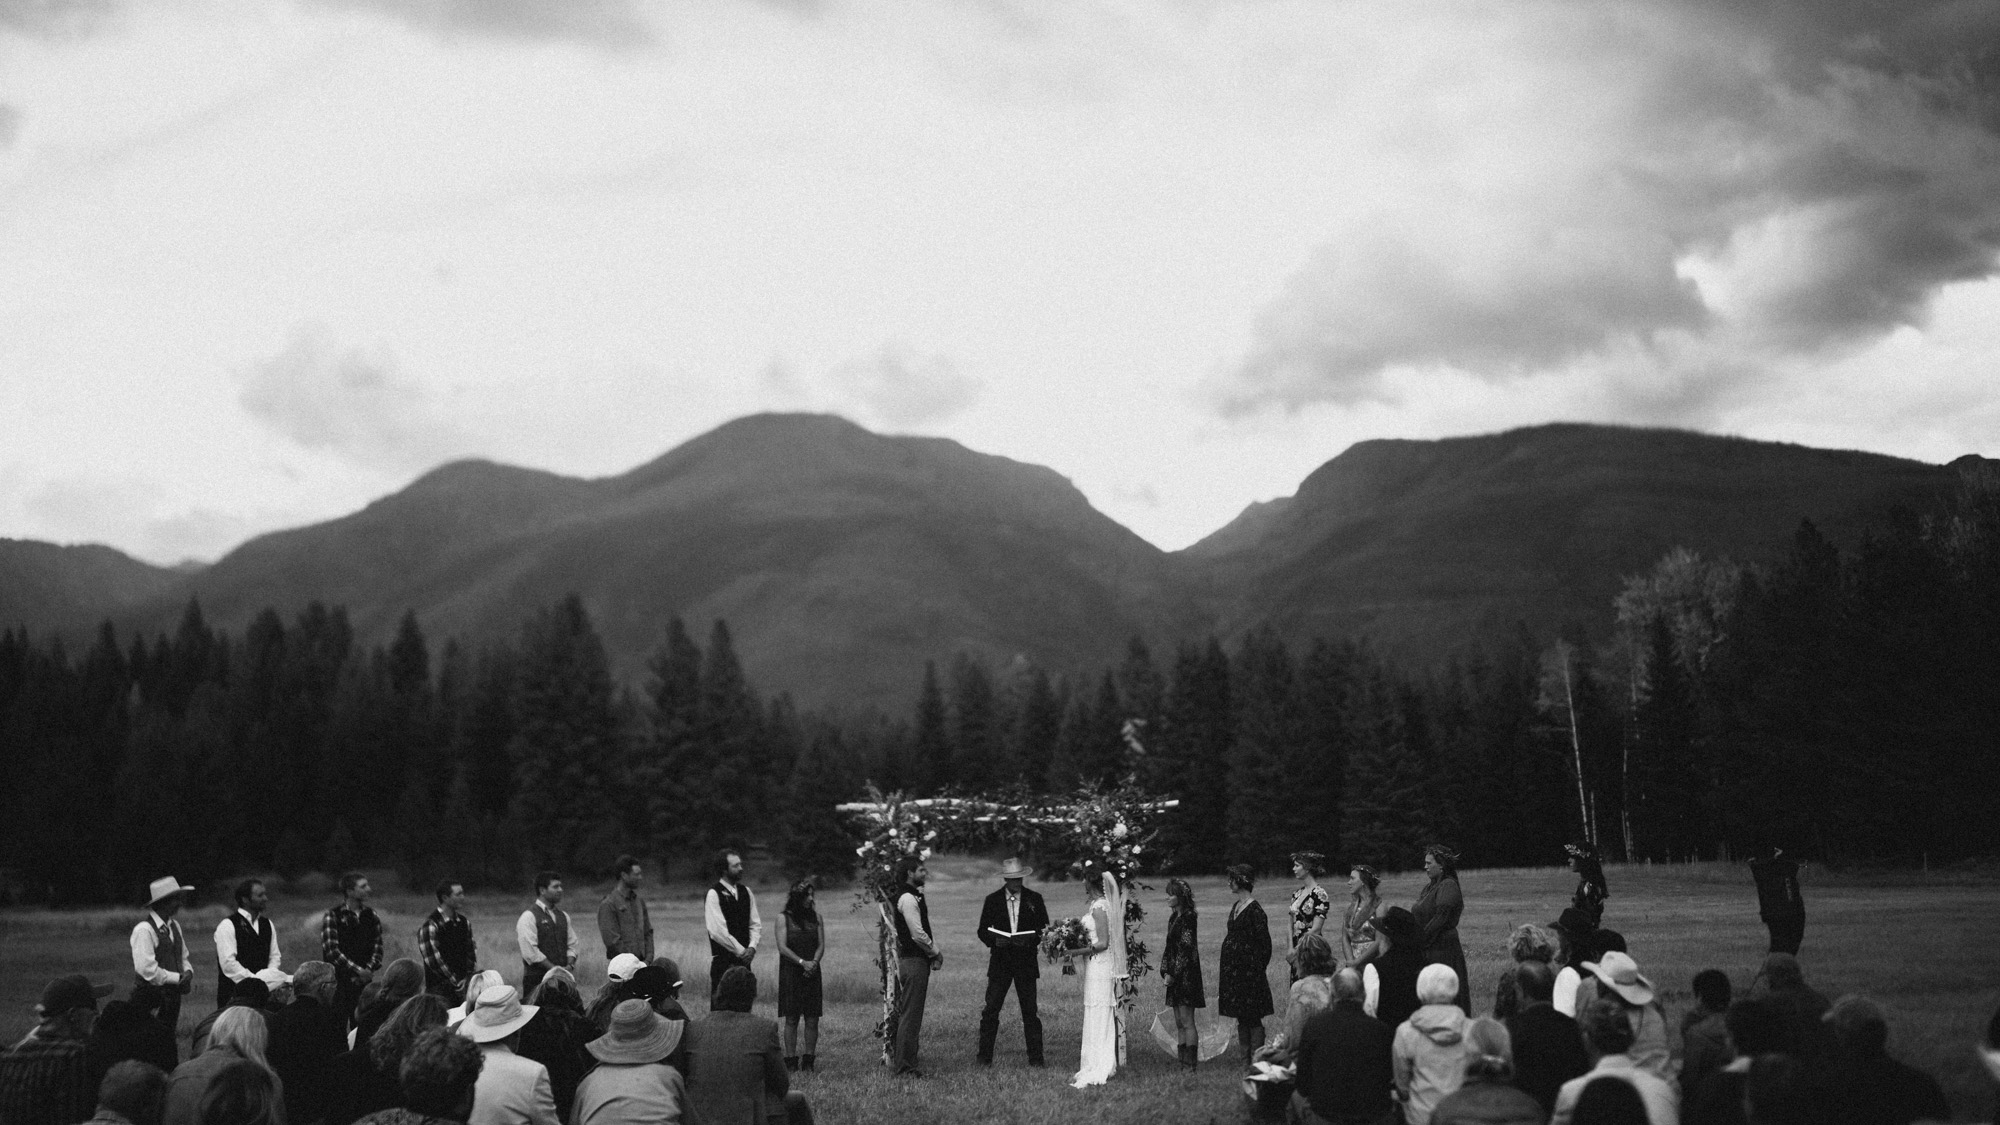 montany_wedding_photos_alec_vanderboom-0108.jpg